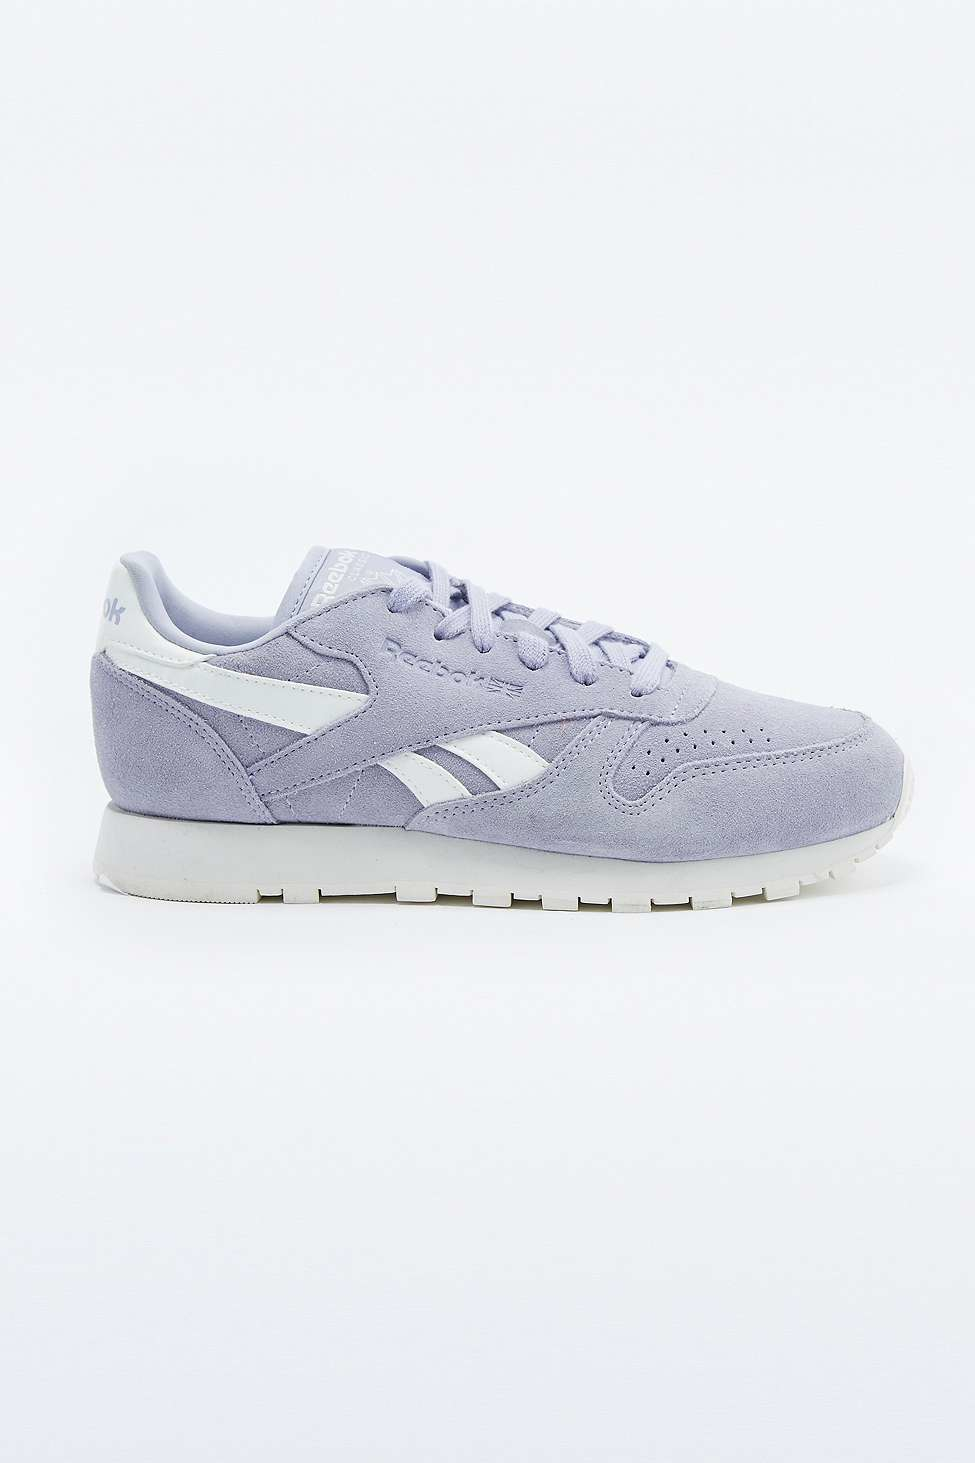 bea90ea20f9c7 Reebok Classic Lilac Suede Trainers in Purple - Lyst